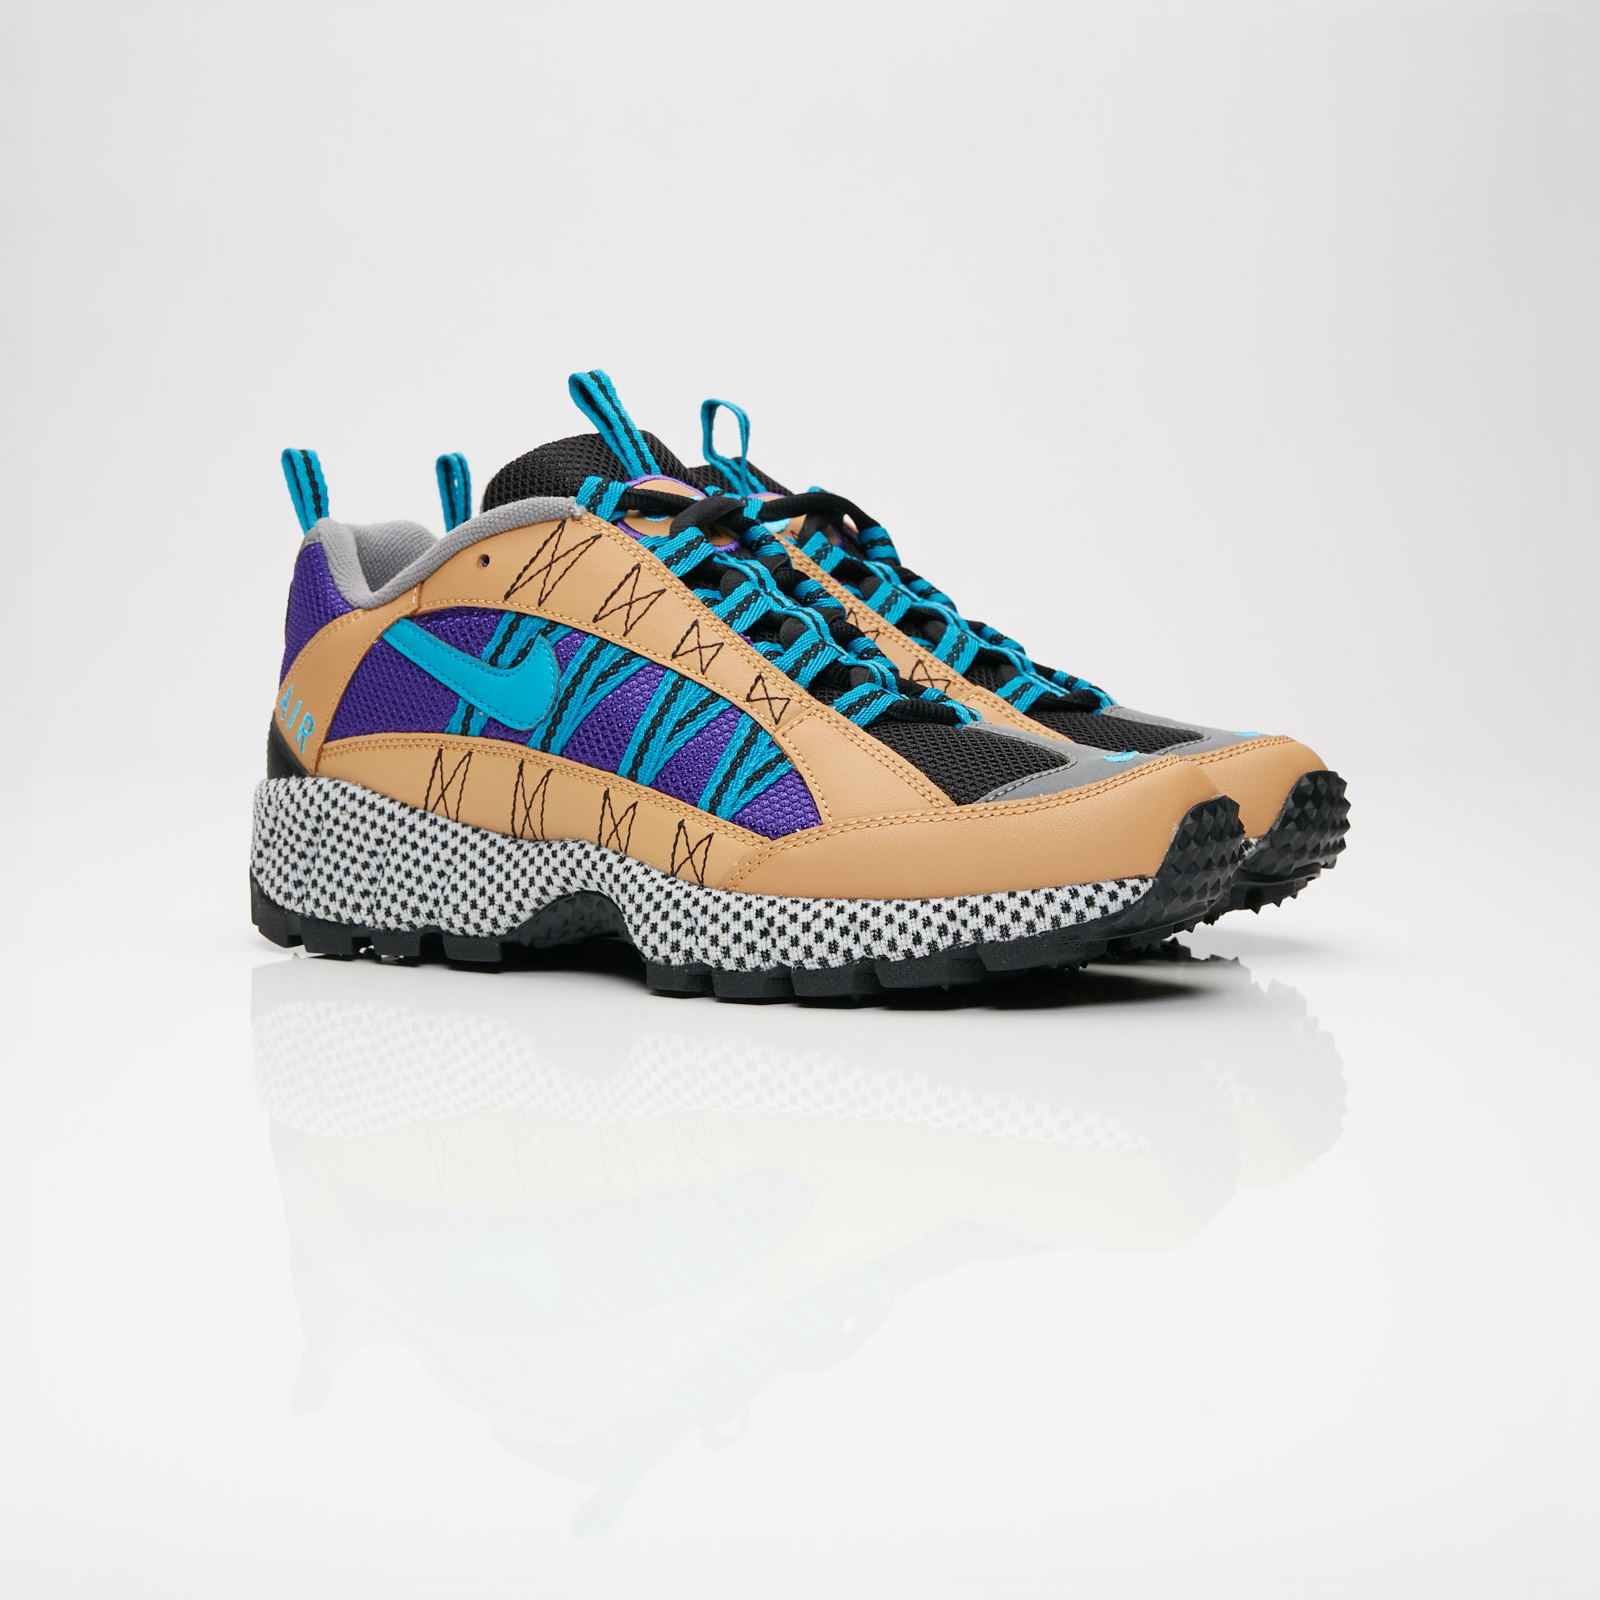 low priced 754aa 2b617 Nike Sportswear Air Humara 17 QS